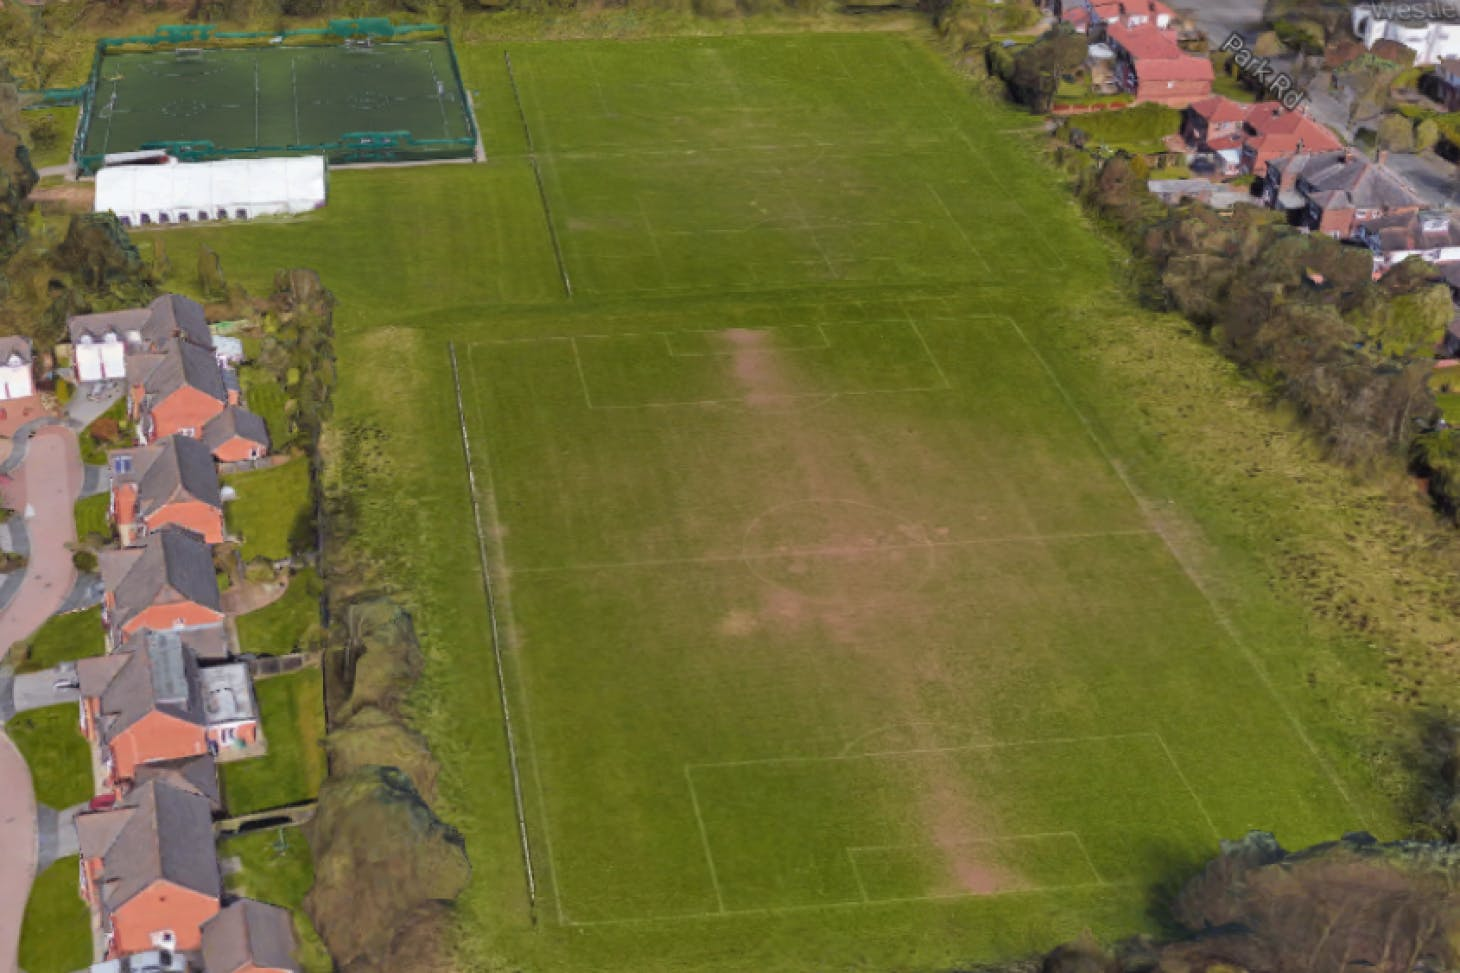 Manchester Maccabi Community And Sports Club 11 a side | Grass football pitch